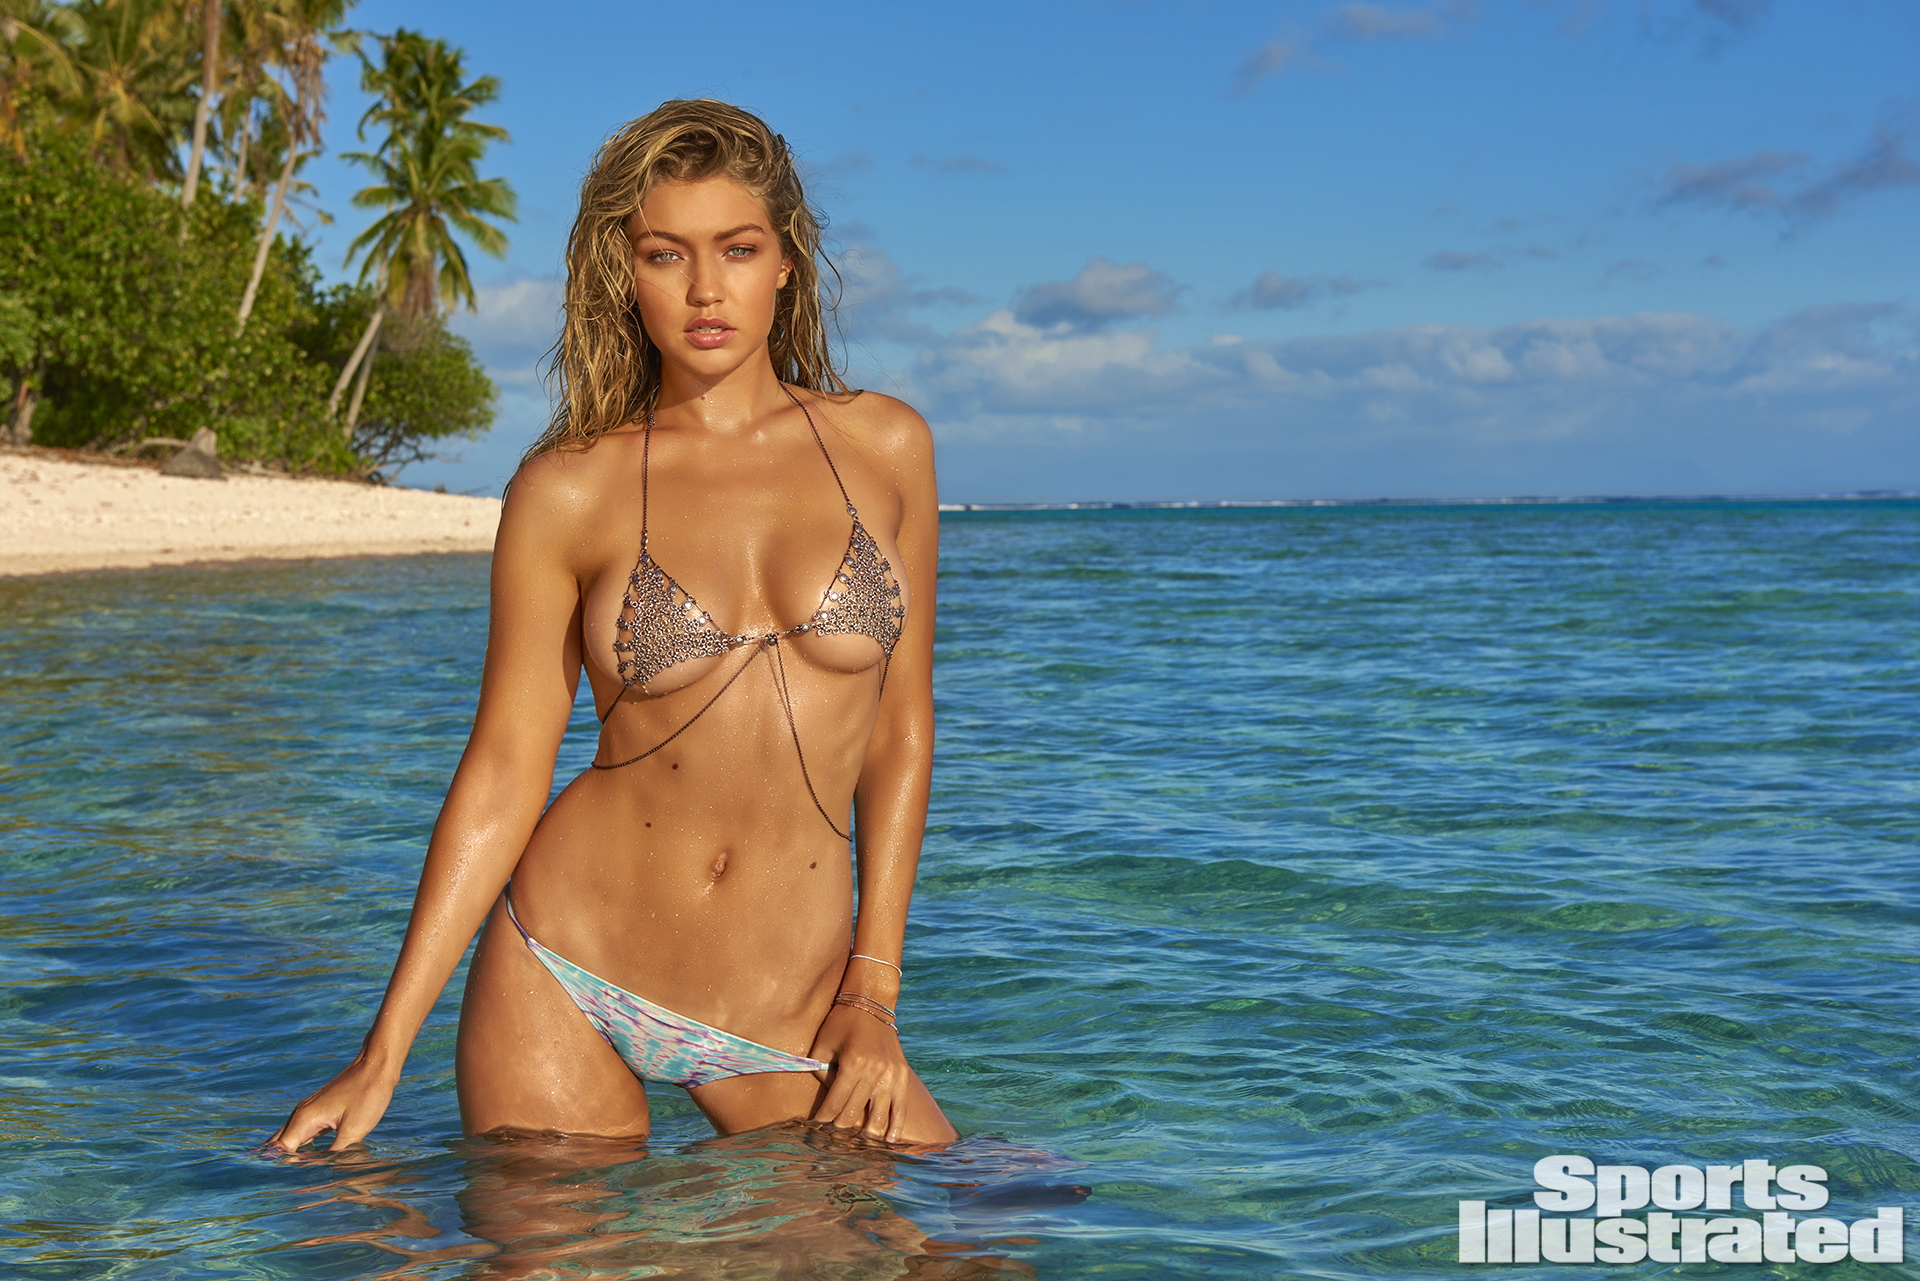 Gigi Hadid was photographed by Yu Tsai in the Islands of Tahiti. Top by LITTER. Swimsuit by MALIA JONES.